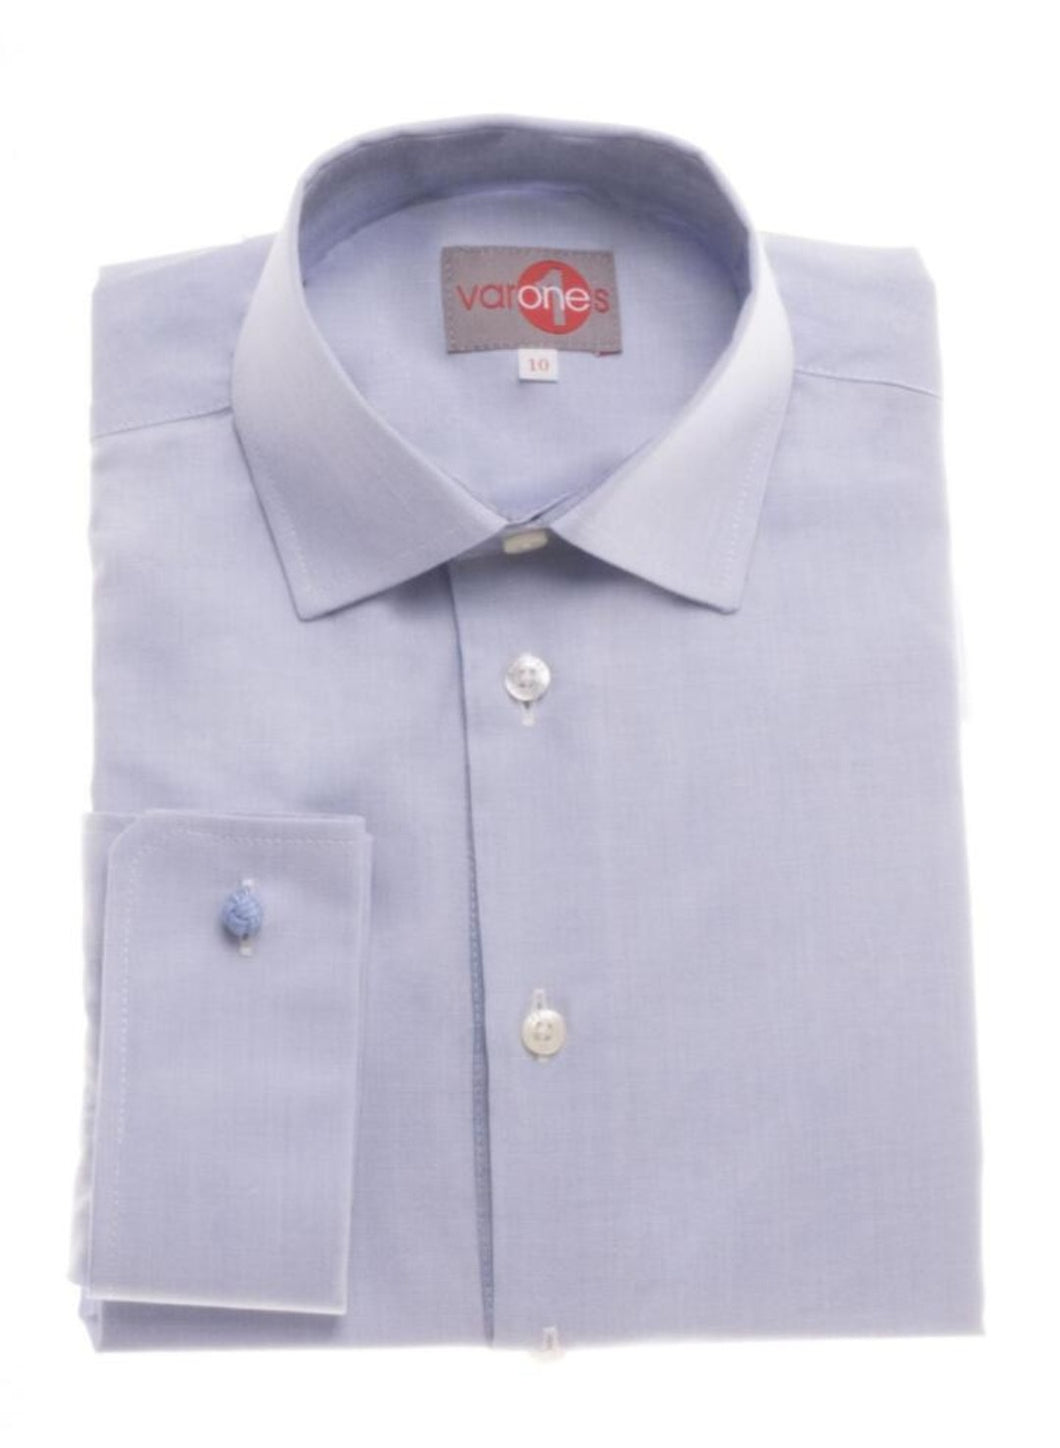 One Varones Boys Blue Shirt With Grey Collar Insert